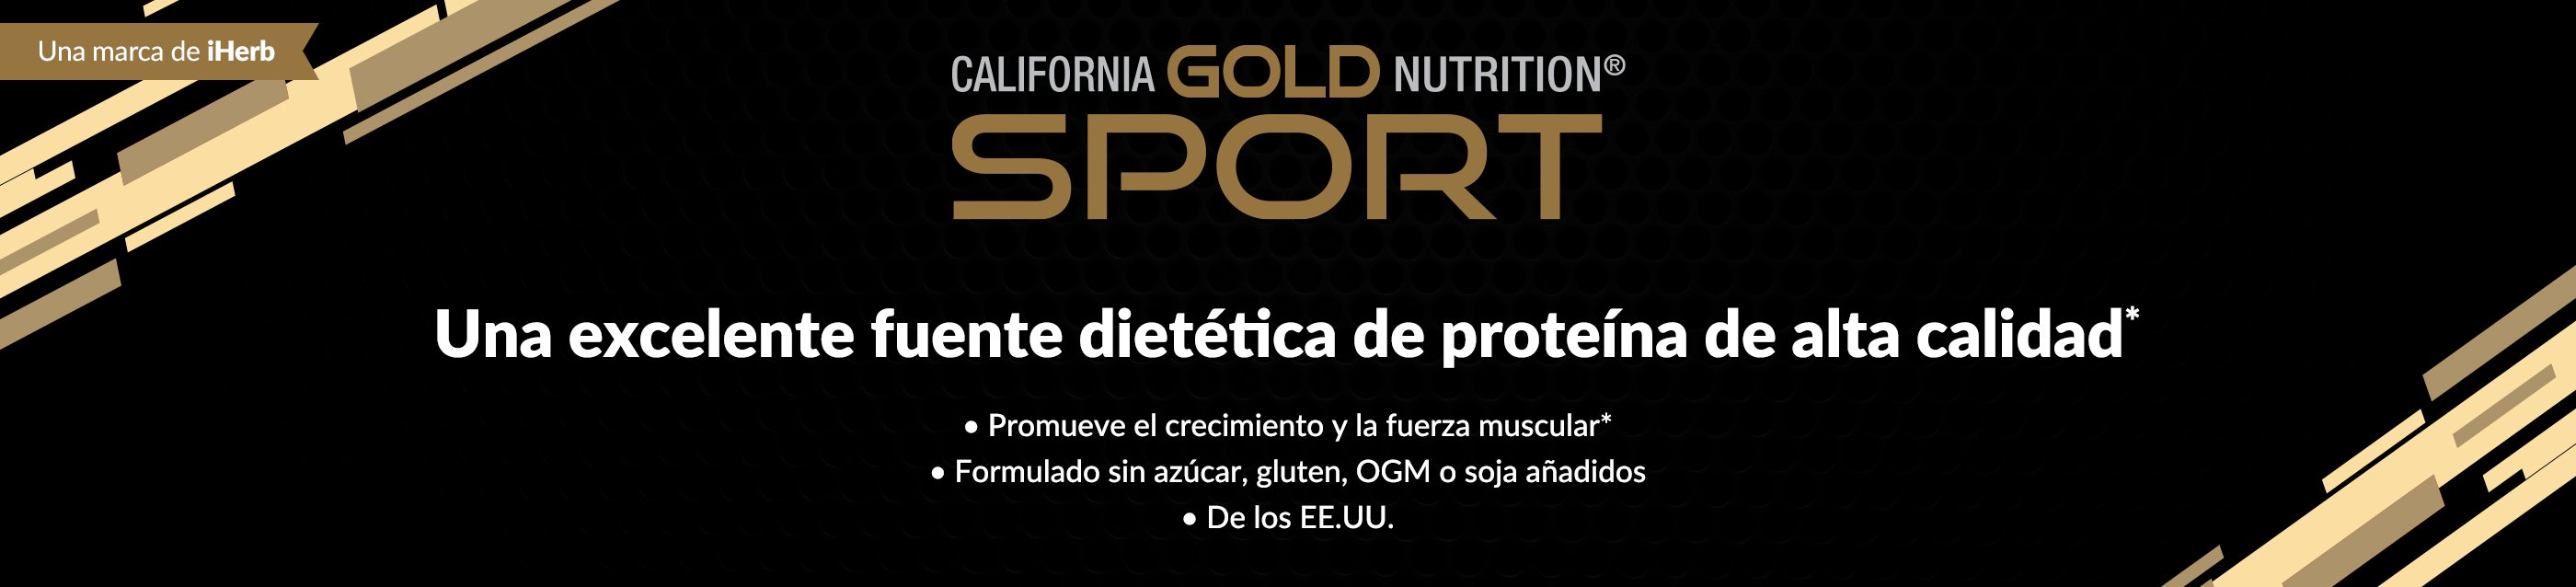 CGN Protein